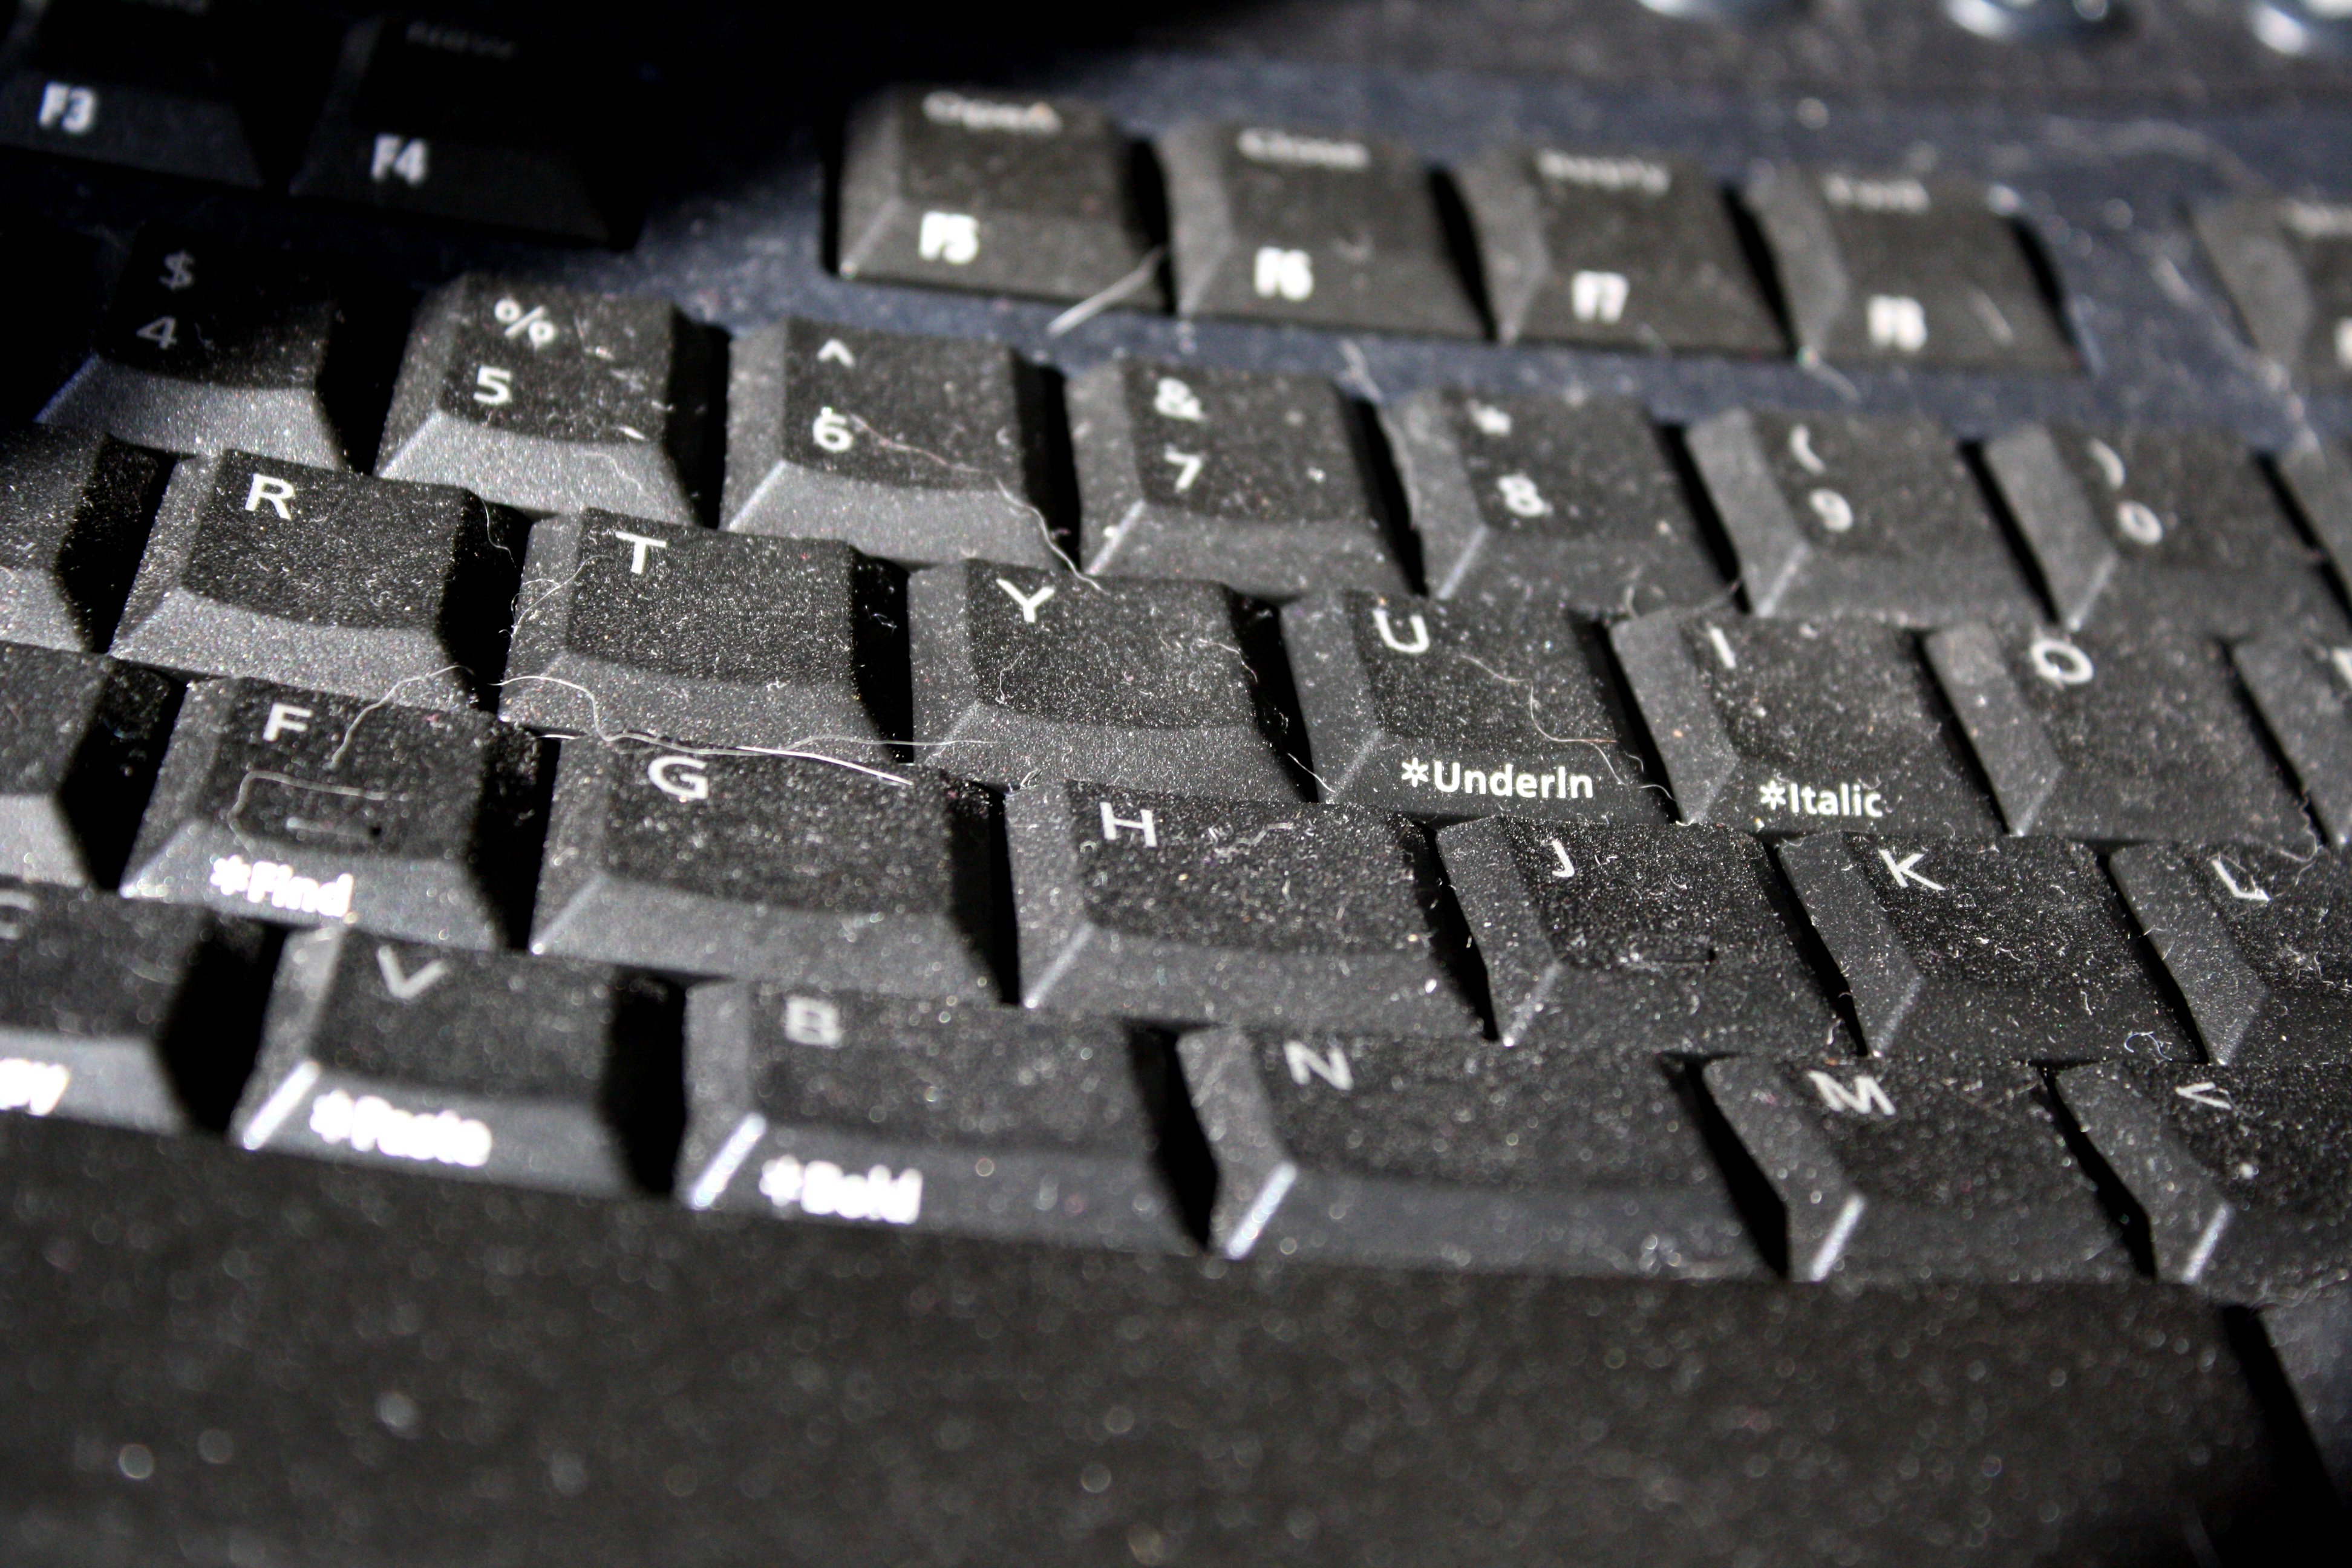 Dusty Computer Keyboard Closeup Picture Free Photograph